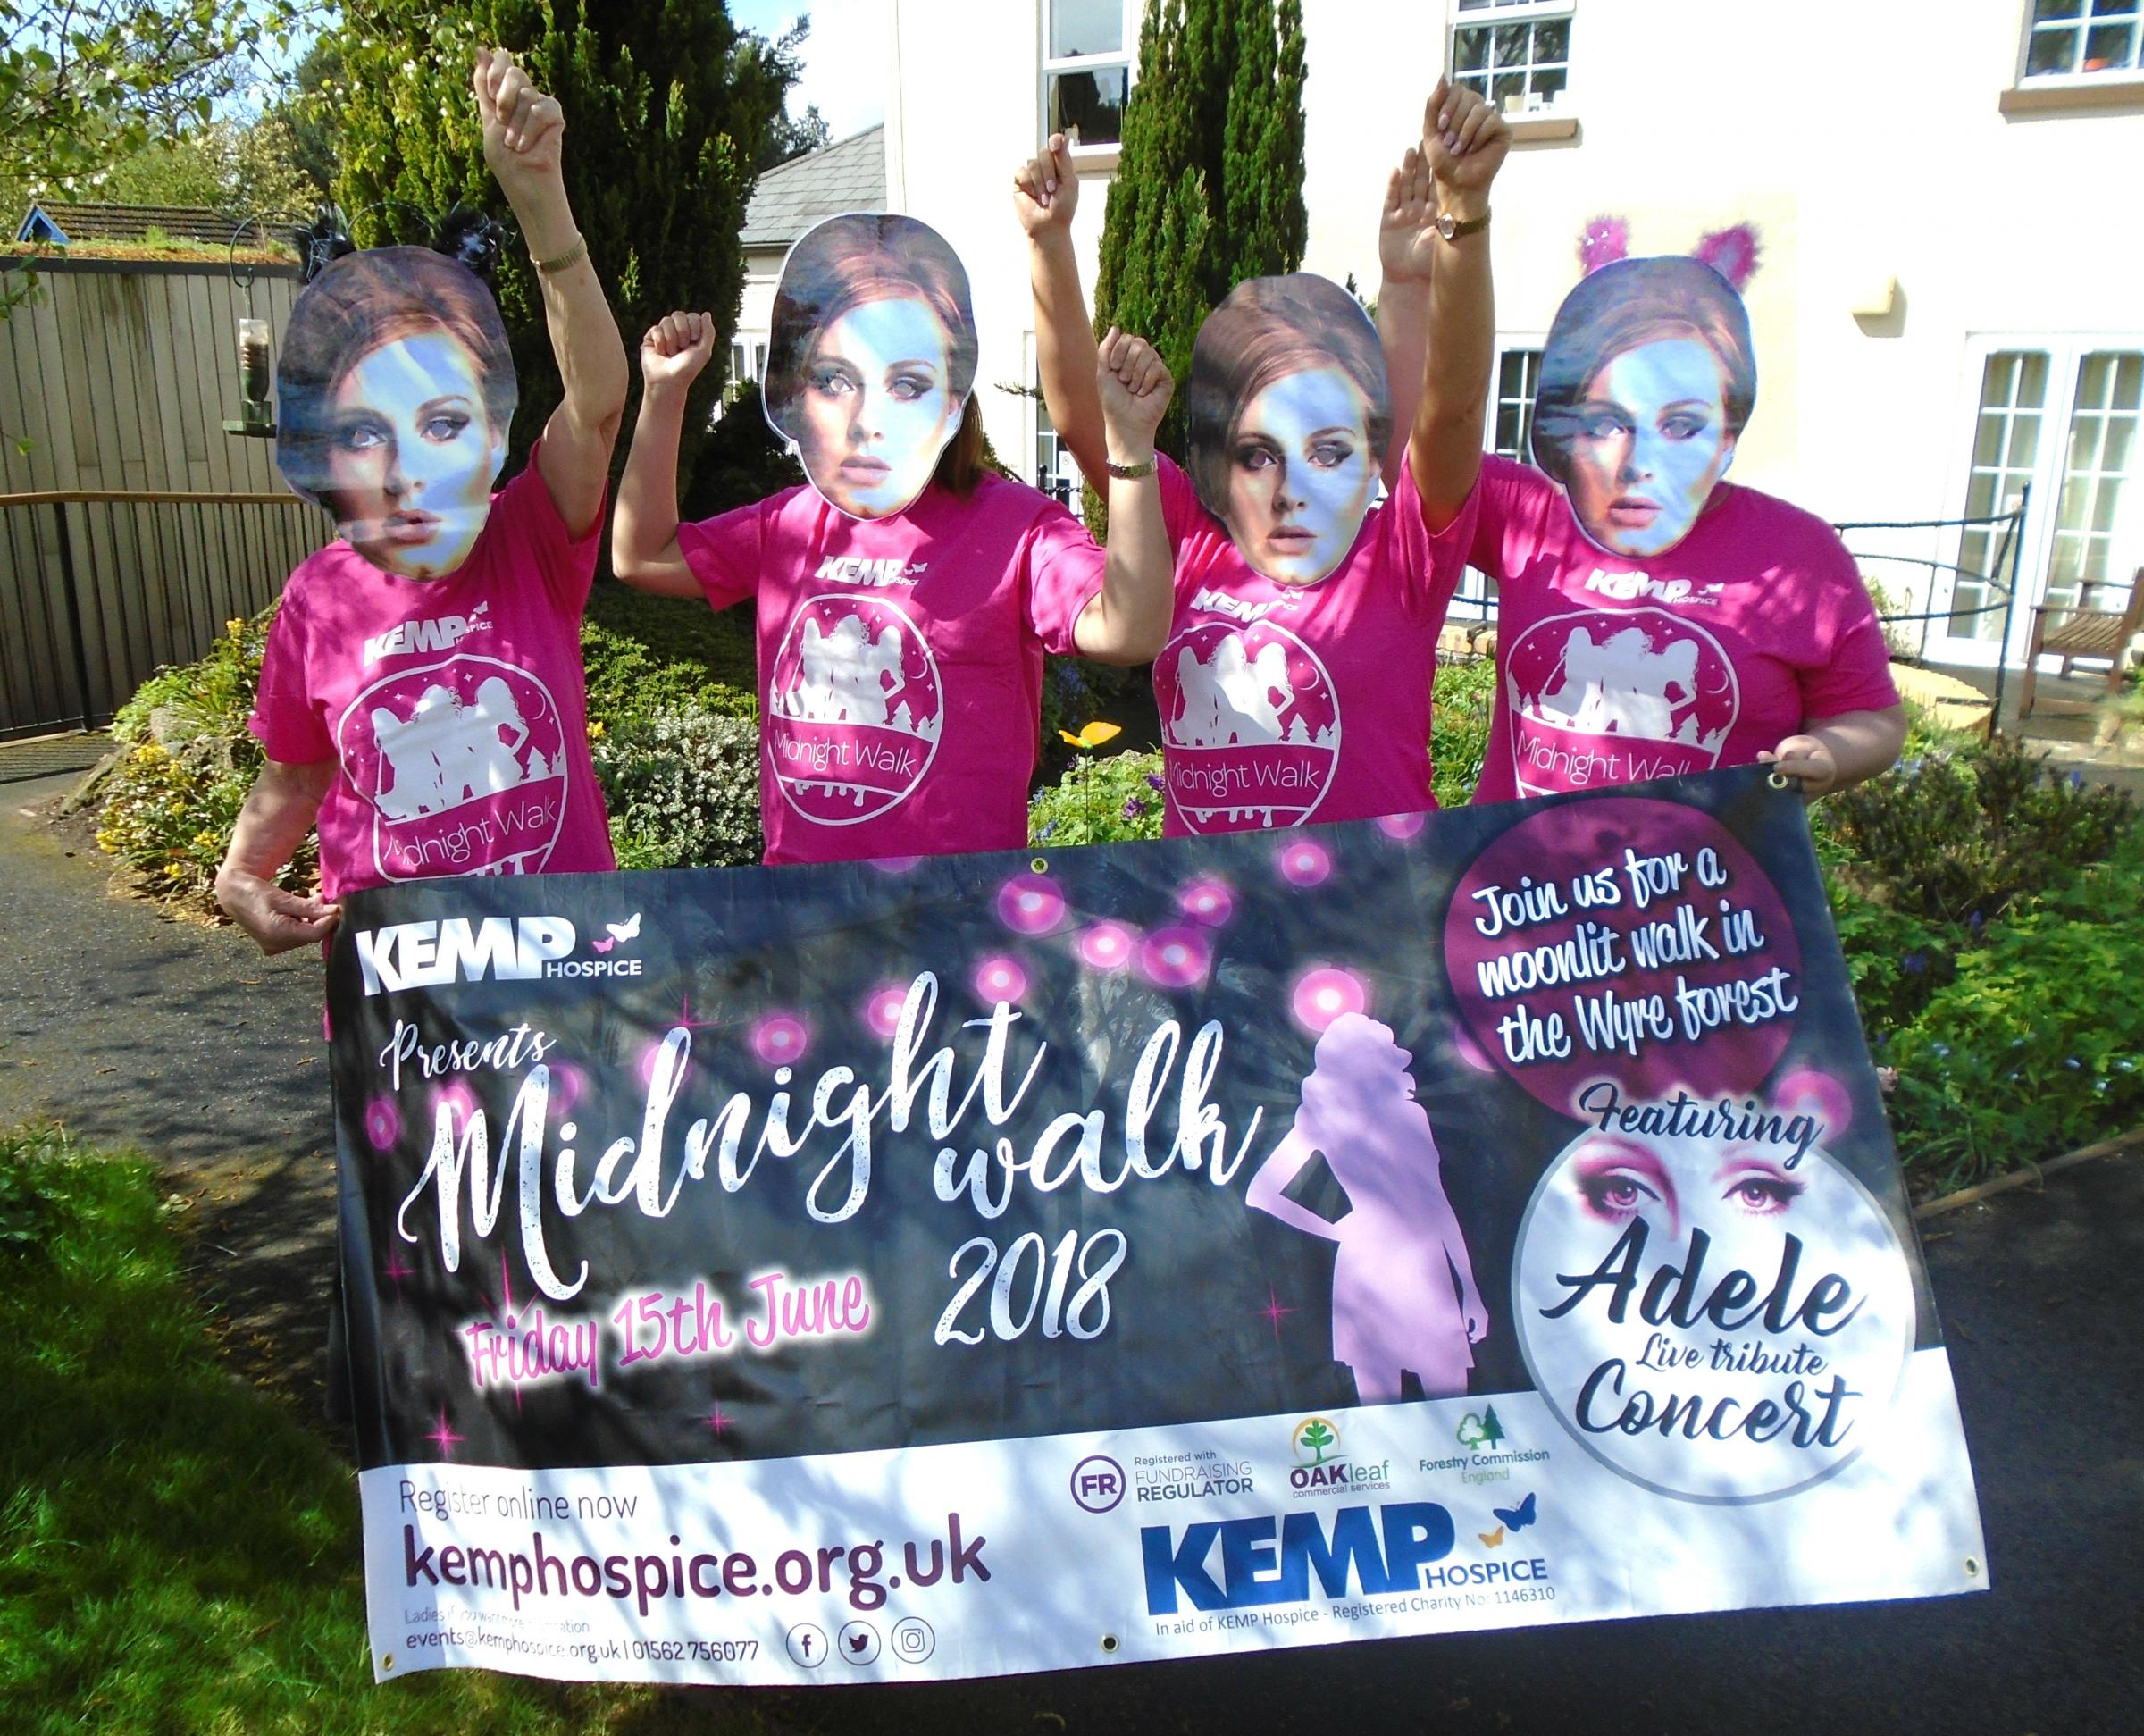 Kemp Hospice is gearing up for its Midnight Walk